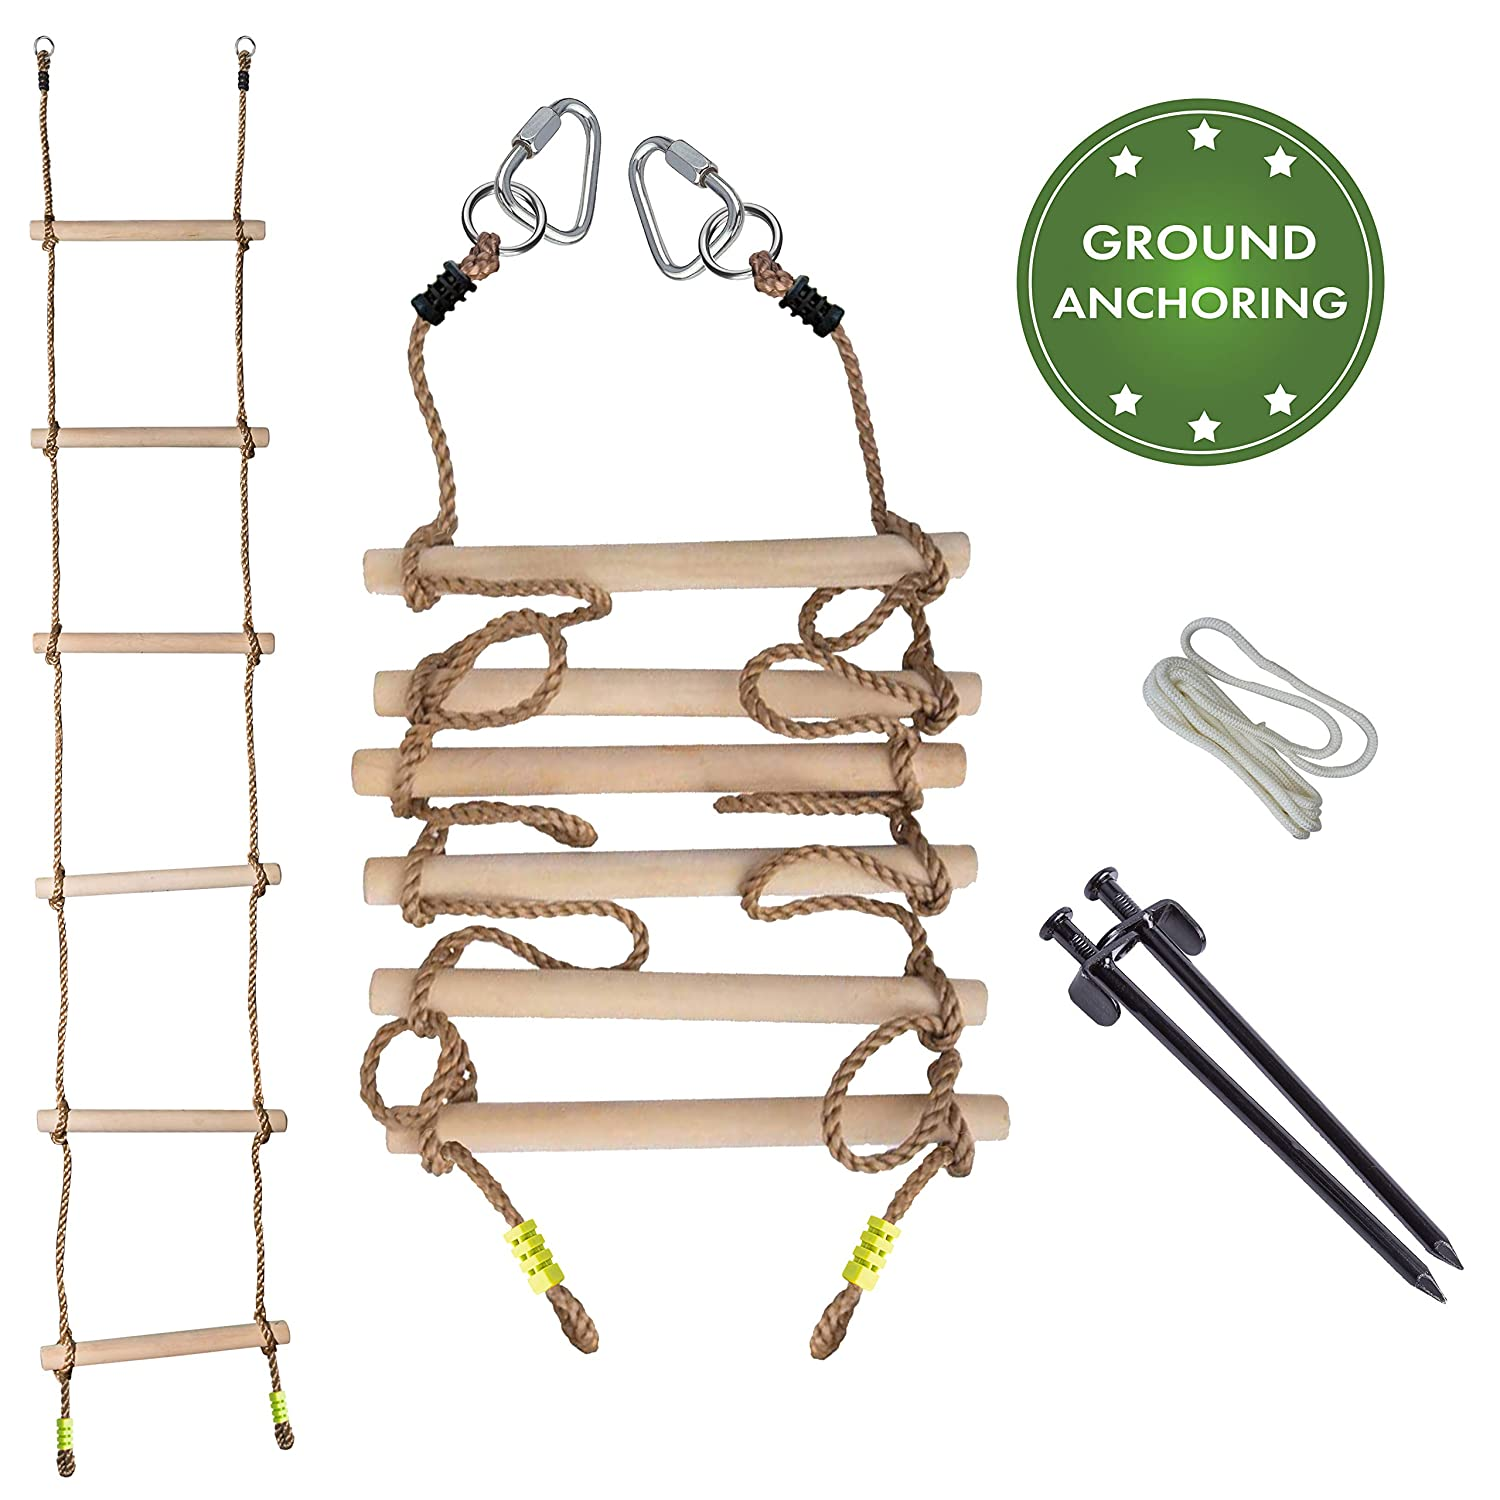 Cateam Rope Ladder for Kids - Durable 1,25' Thick Hardwood Stairs - 7 ft. Climbing Ninja line Ladder for Kids or Adults with Ground anchoring - Swing Set Accessories for slacklines